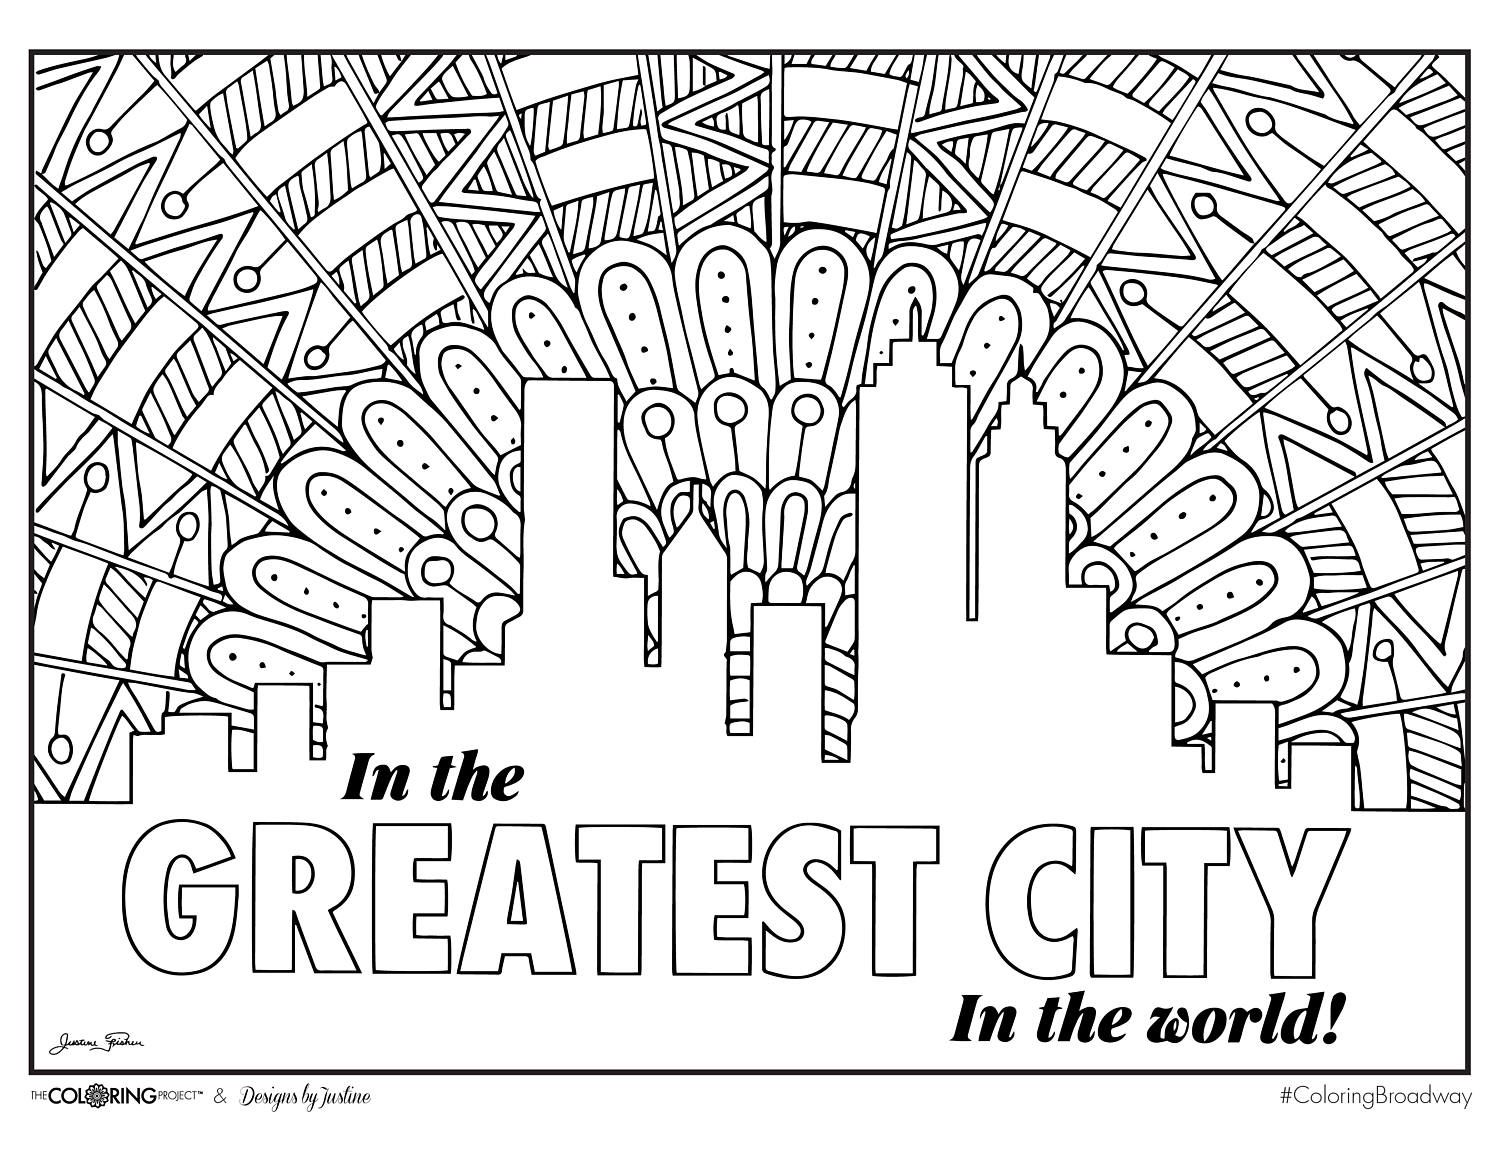 Coloring broadway hamilton musical edition greatest city for Hamilton coloring pages